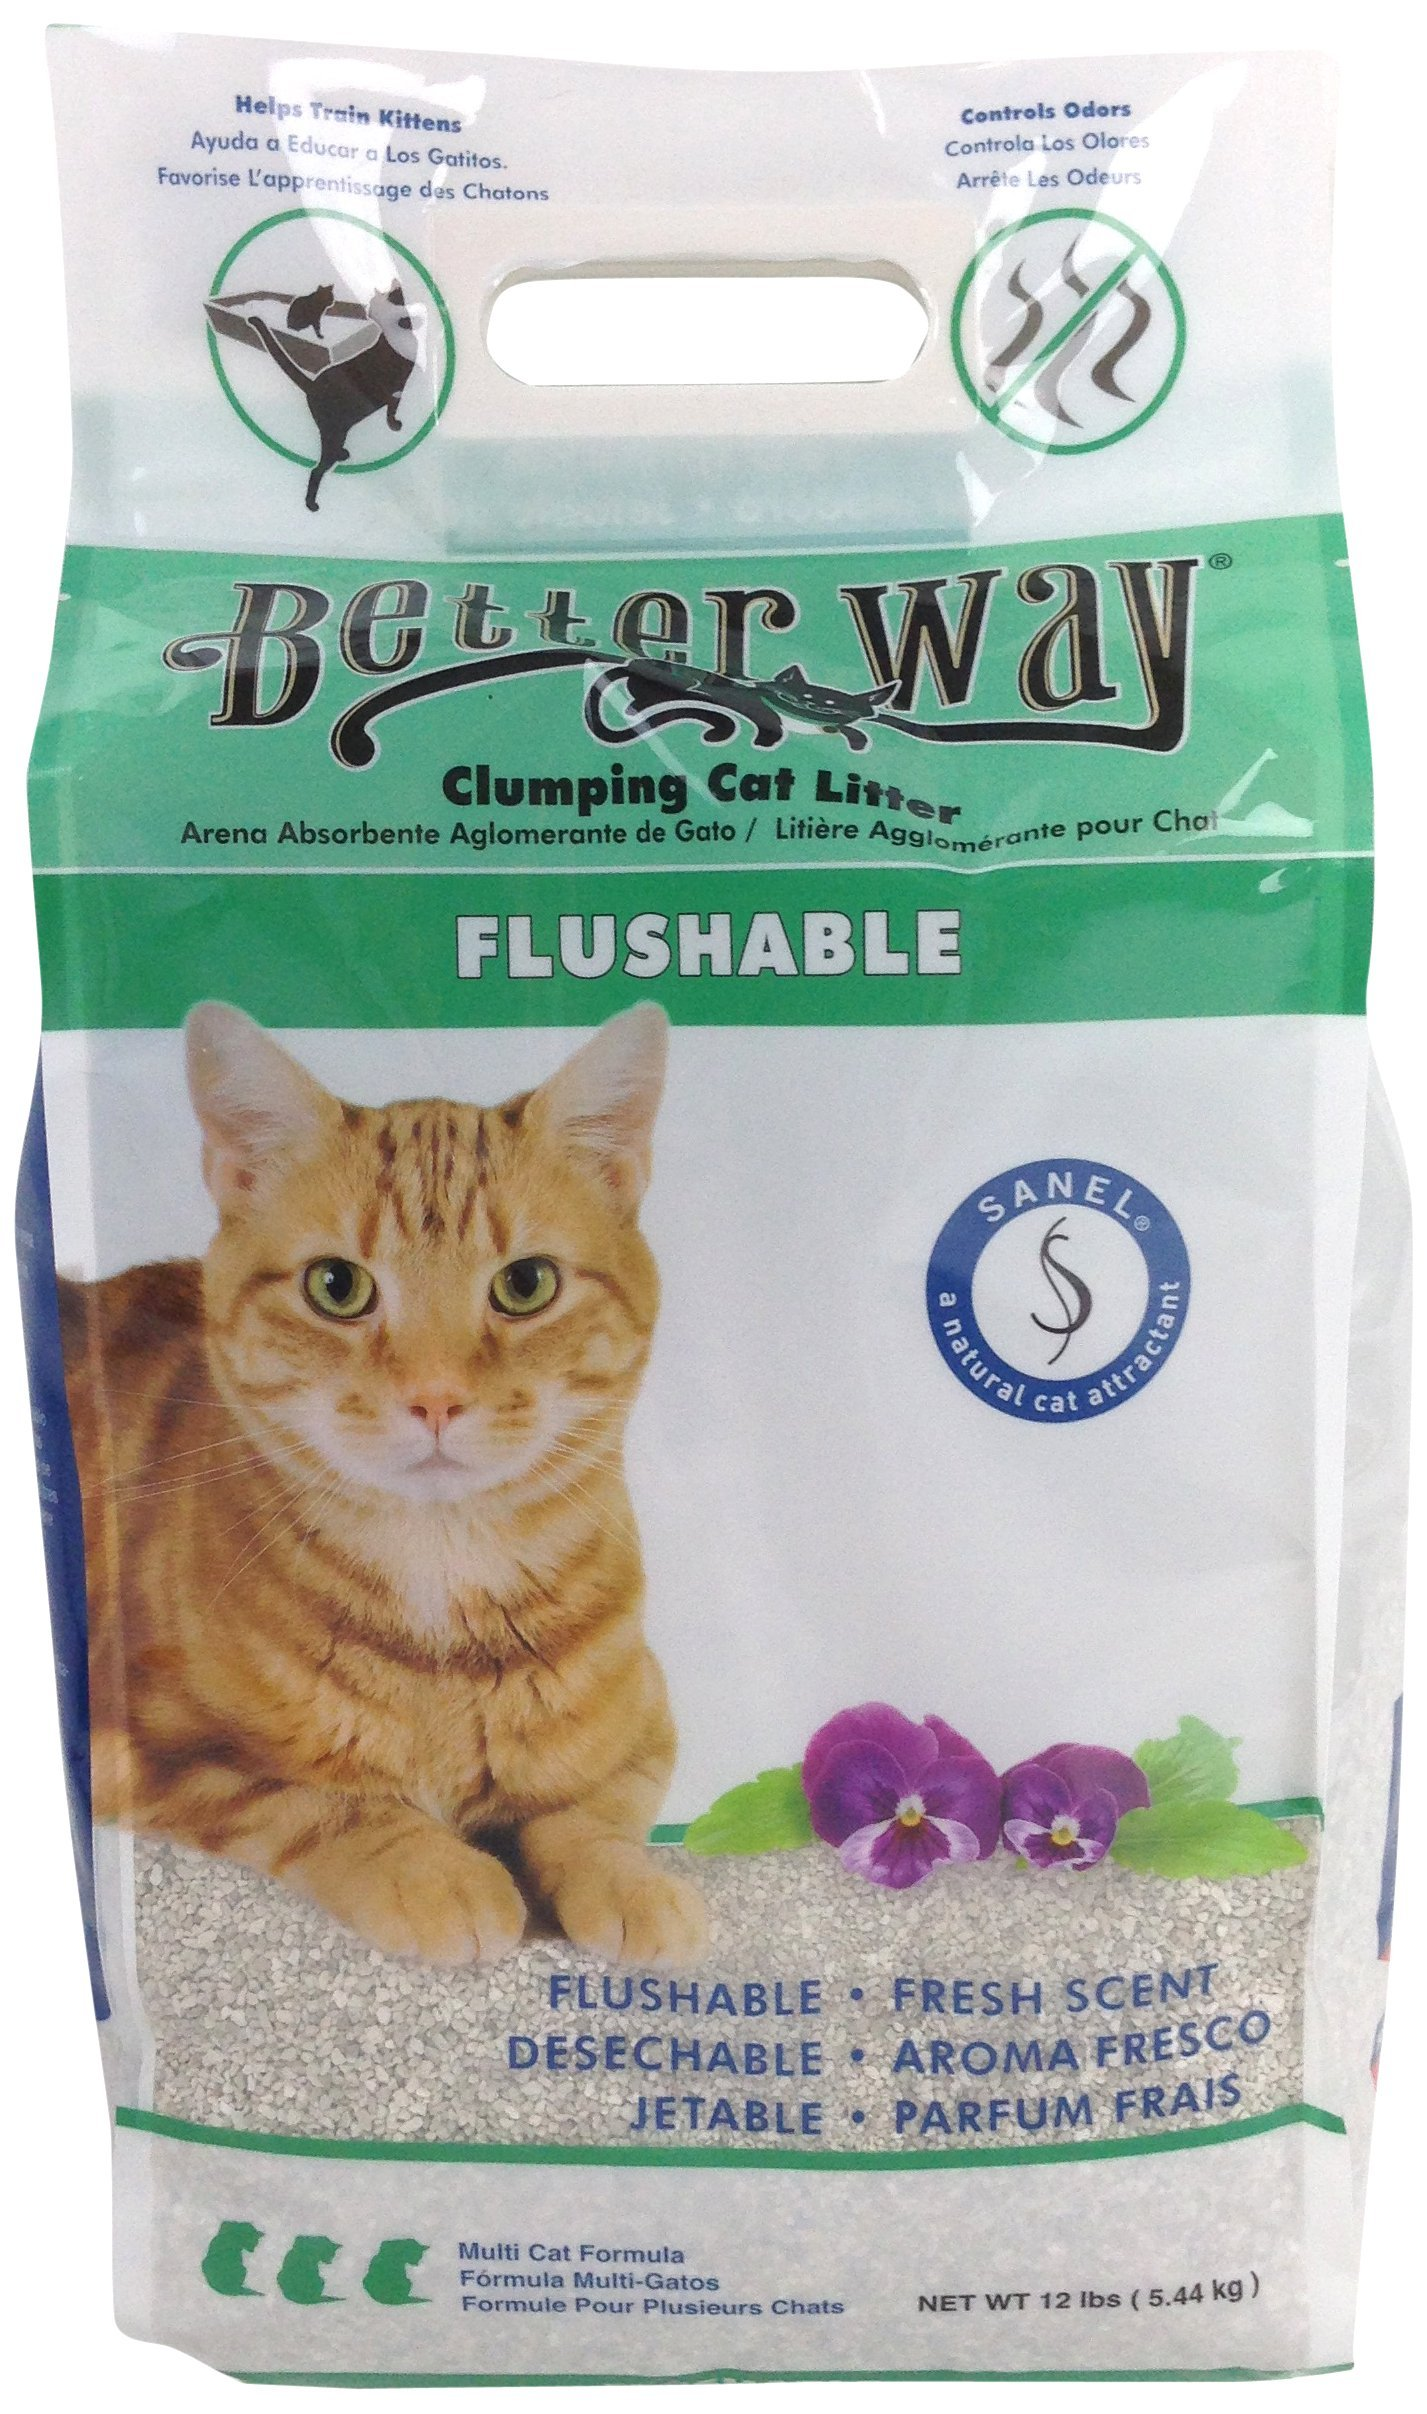 Better Way Eco Fresh Clumping Cat Litter (formerly Better Way Flushable Cat Litter), 12lb bag (pack of 3) by Ultrapet